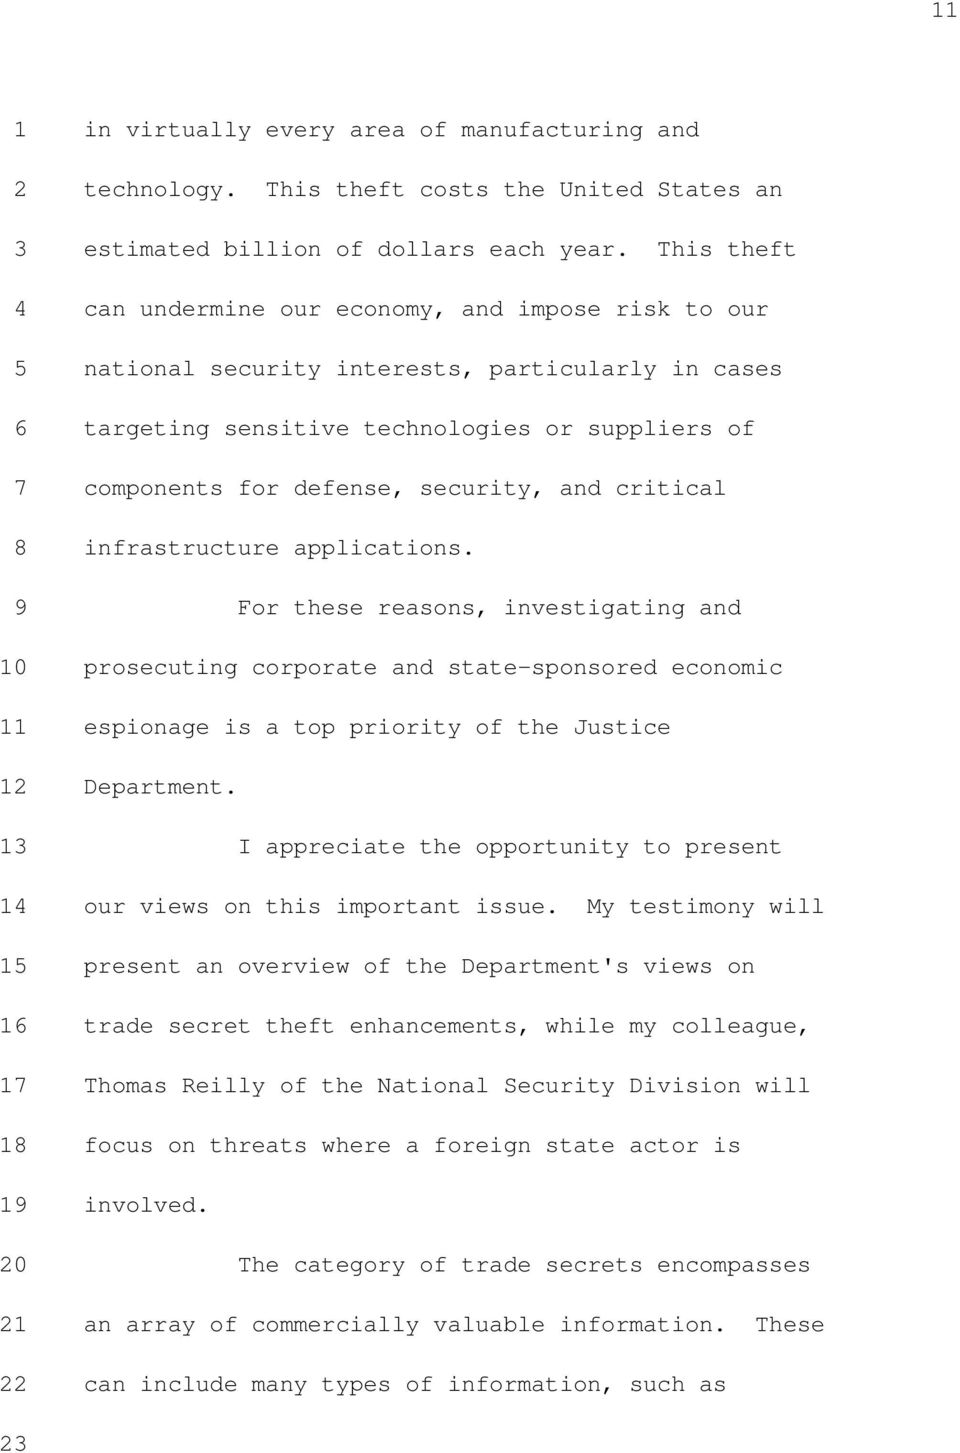 critical infrastructure applications. For these reasons, investigating and prosecuting corporate and state-sponsored economic espionage is a top priority of the Justice Department.